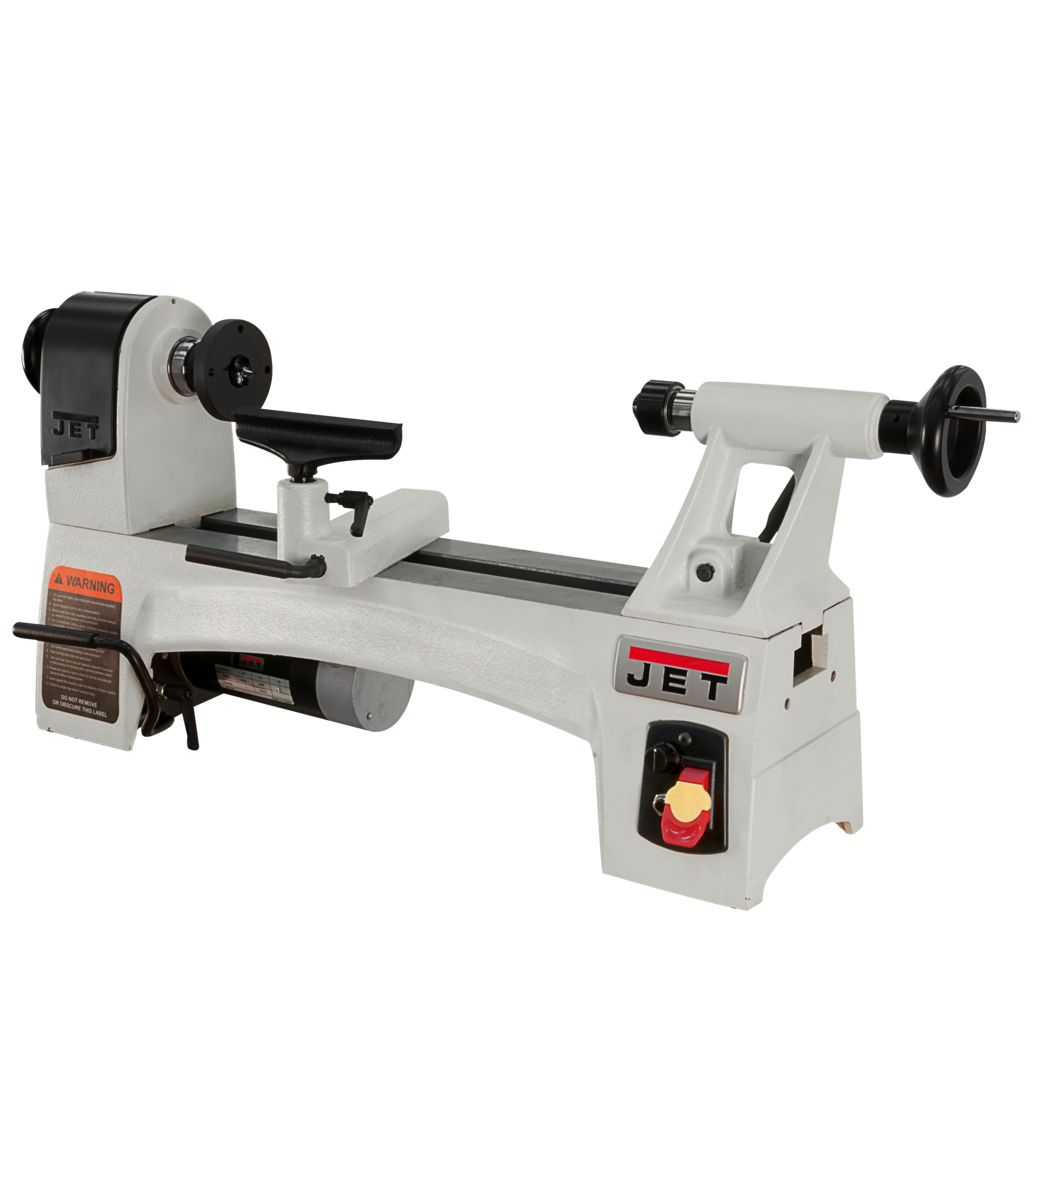 JWL-1015VS 10'' x 15'' Variable Speed Wood Lathe